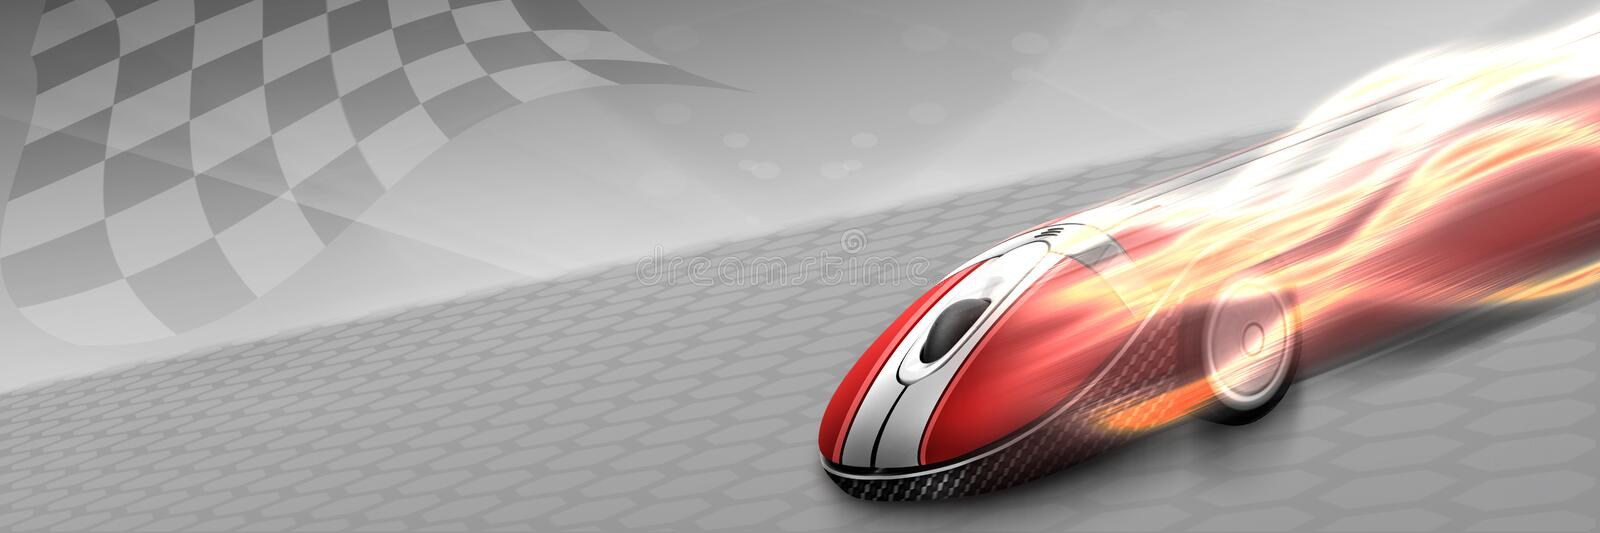 Download Super mouse stock illustration. Image of auto, connecting - 9739593